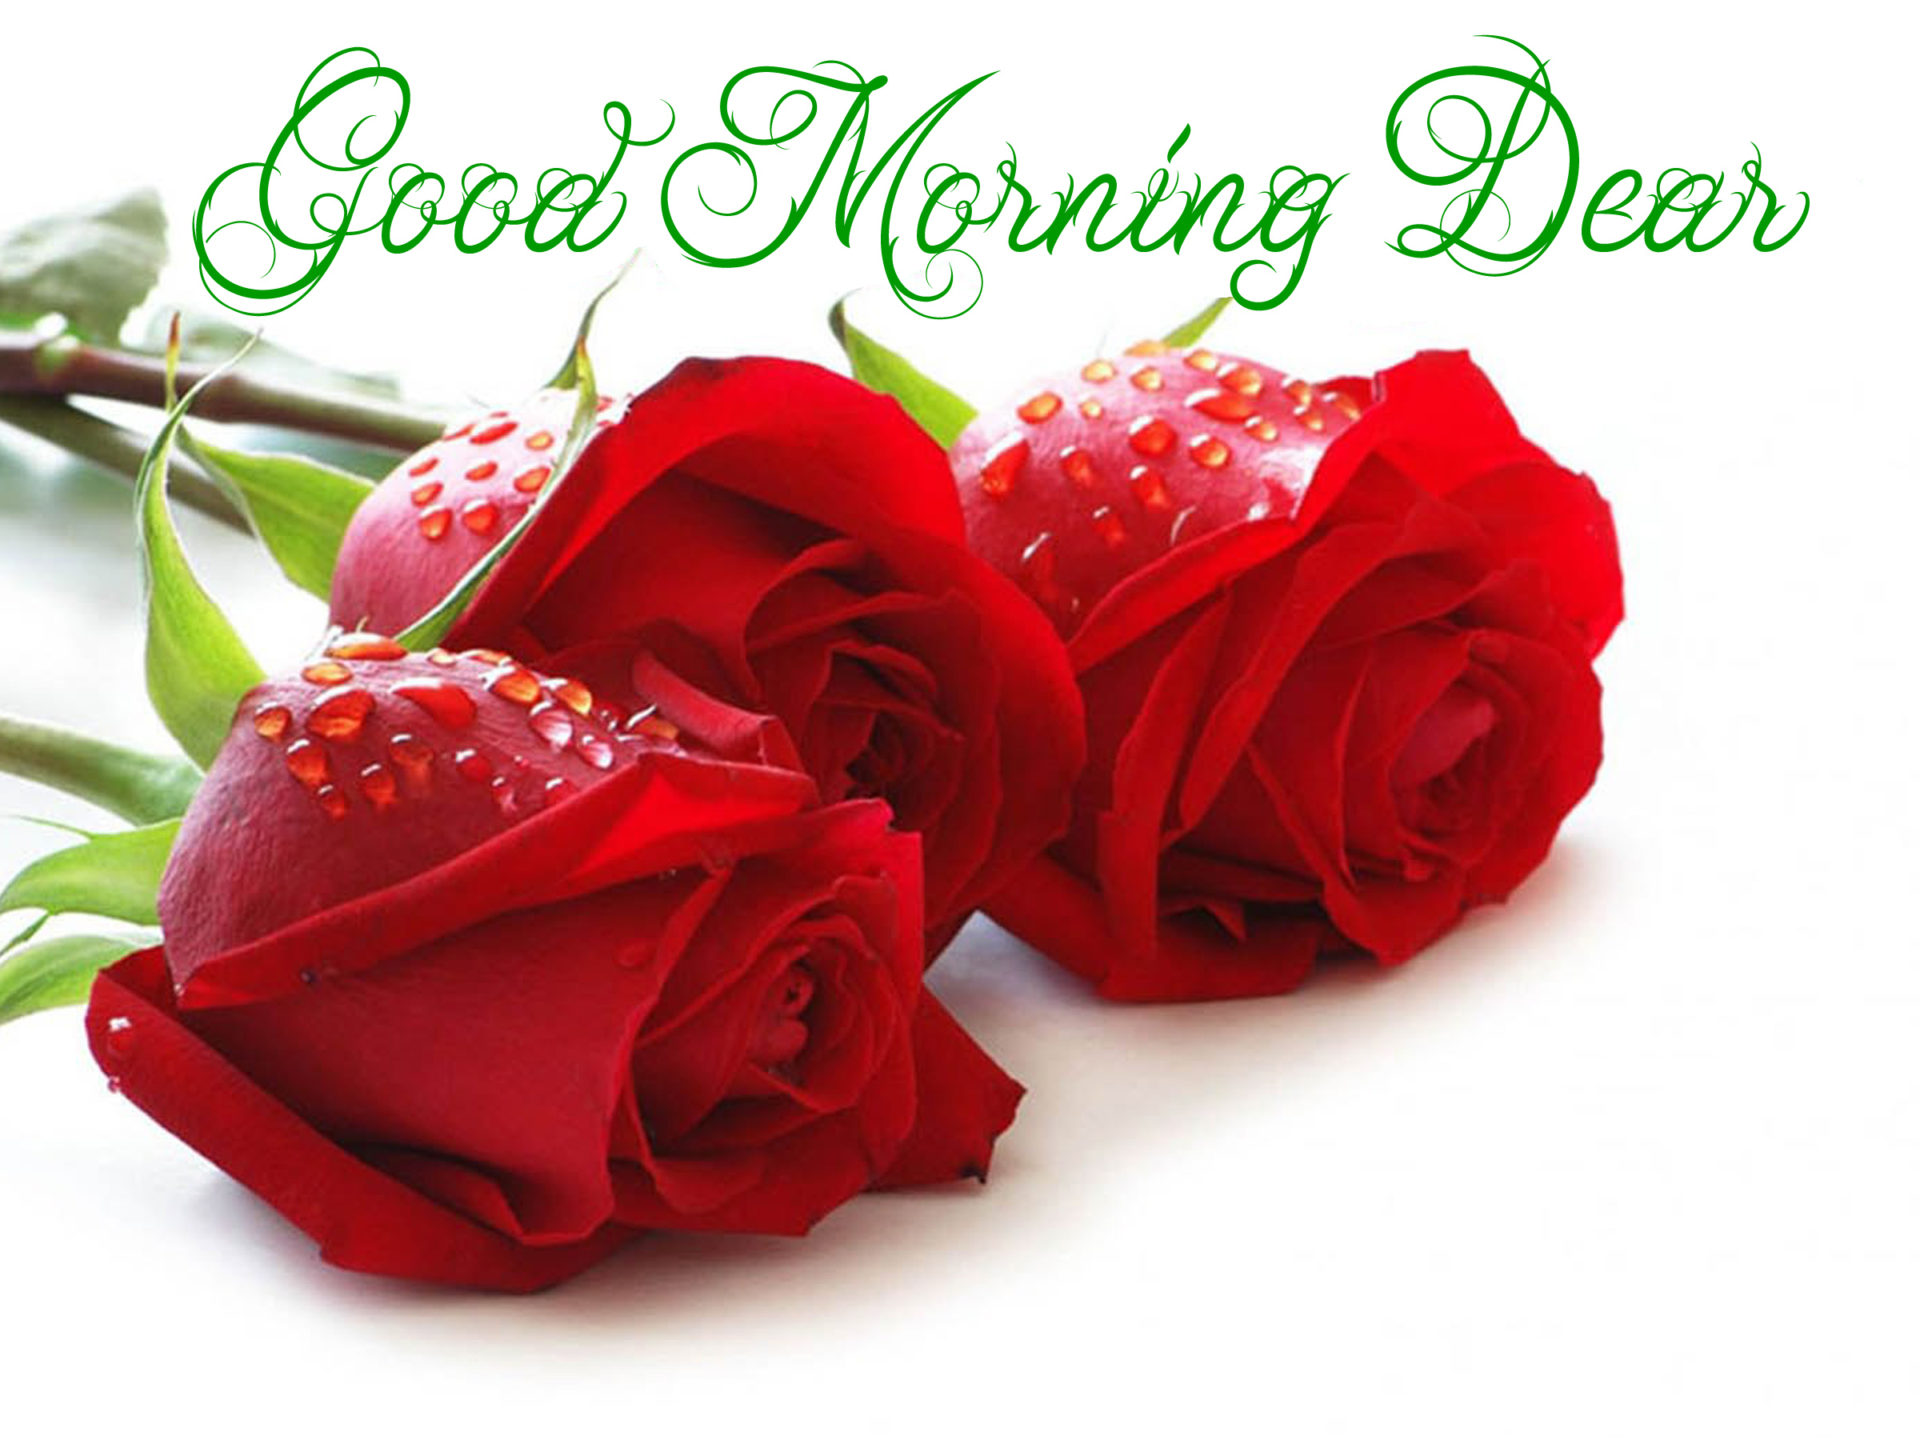 New Year Wishes Wallpapers With Quotes Good Morning Dear Red Roses With Water Droplets